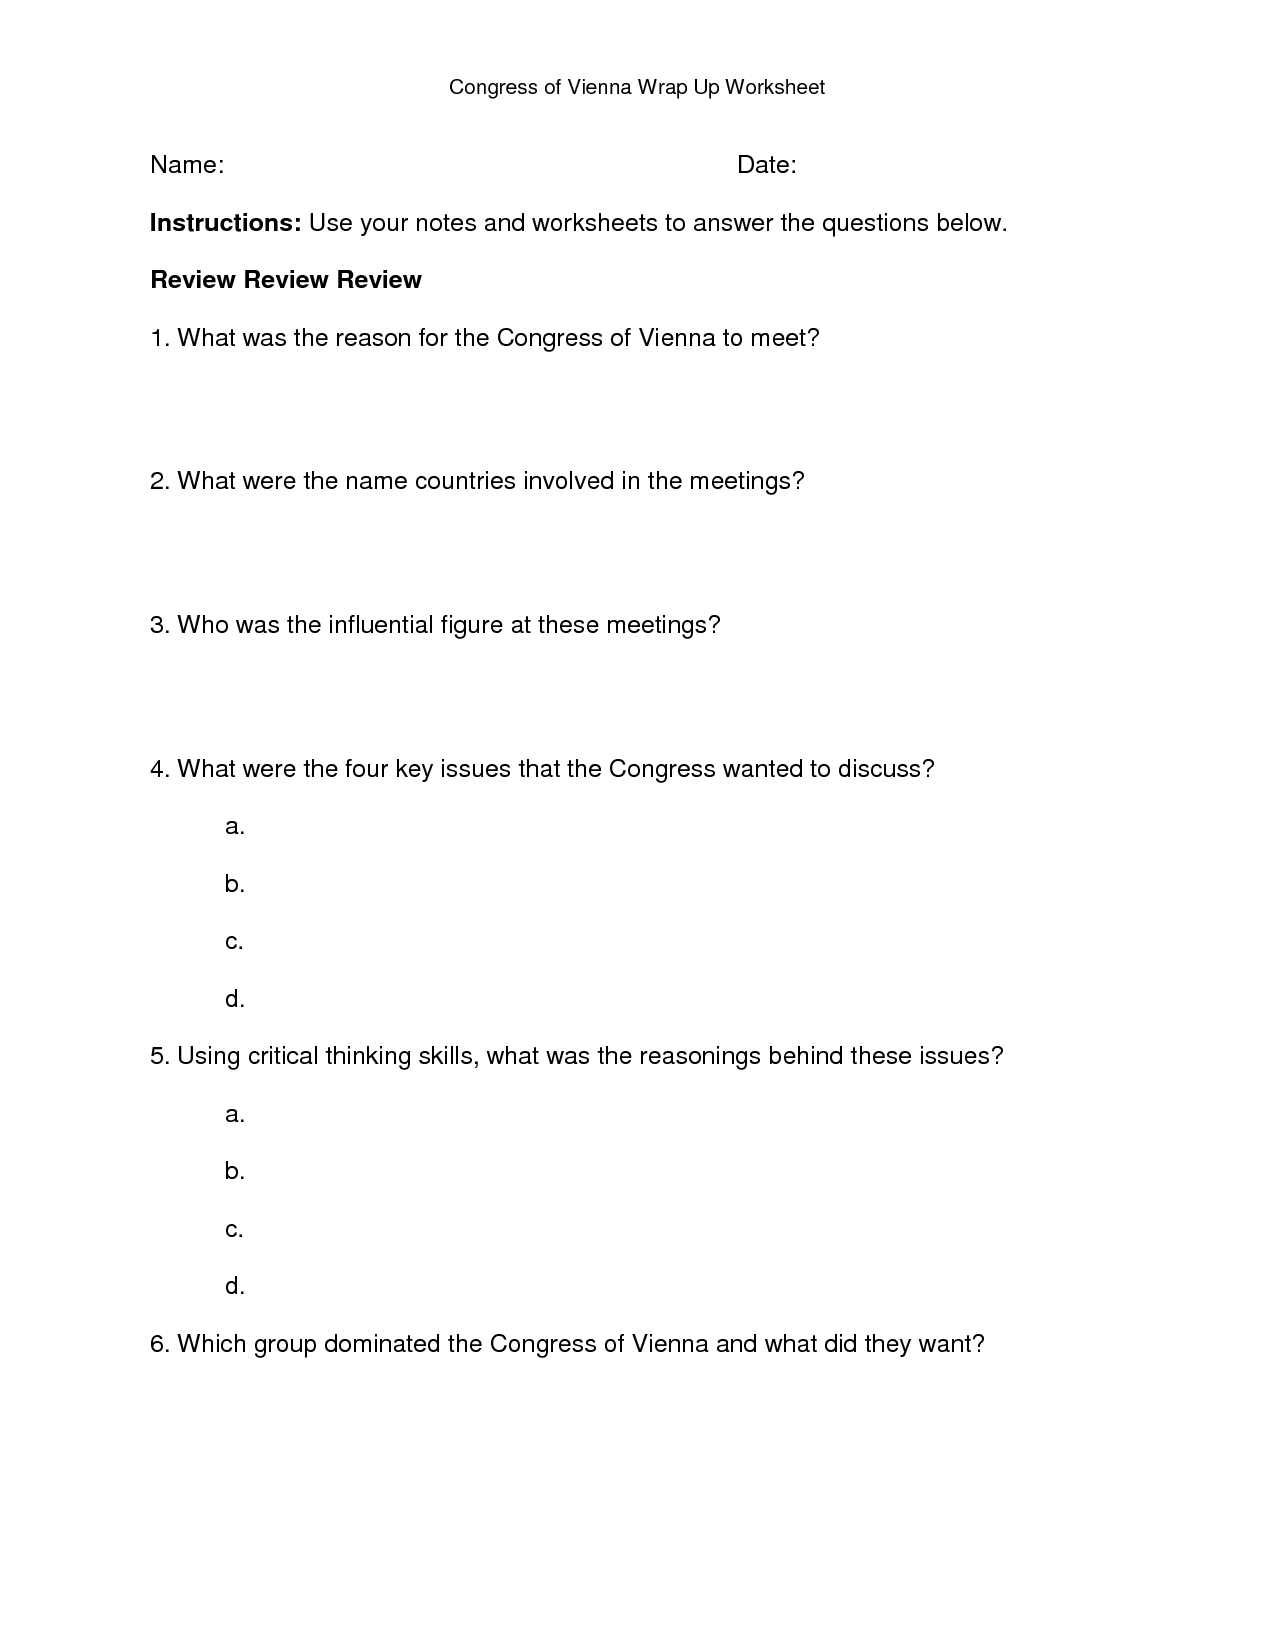 Worksheet congress of vienna pinterest worksheets robcynllc Image collections